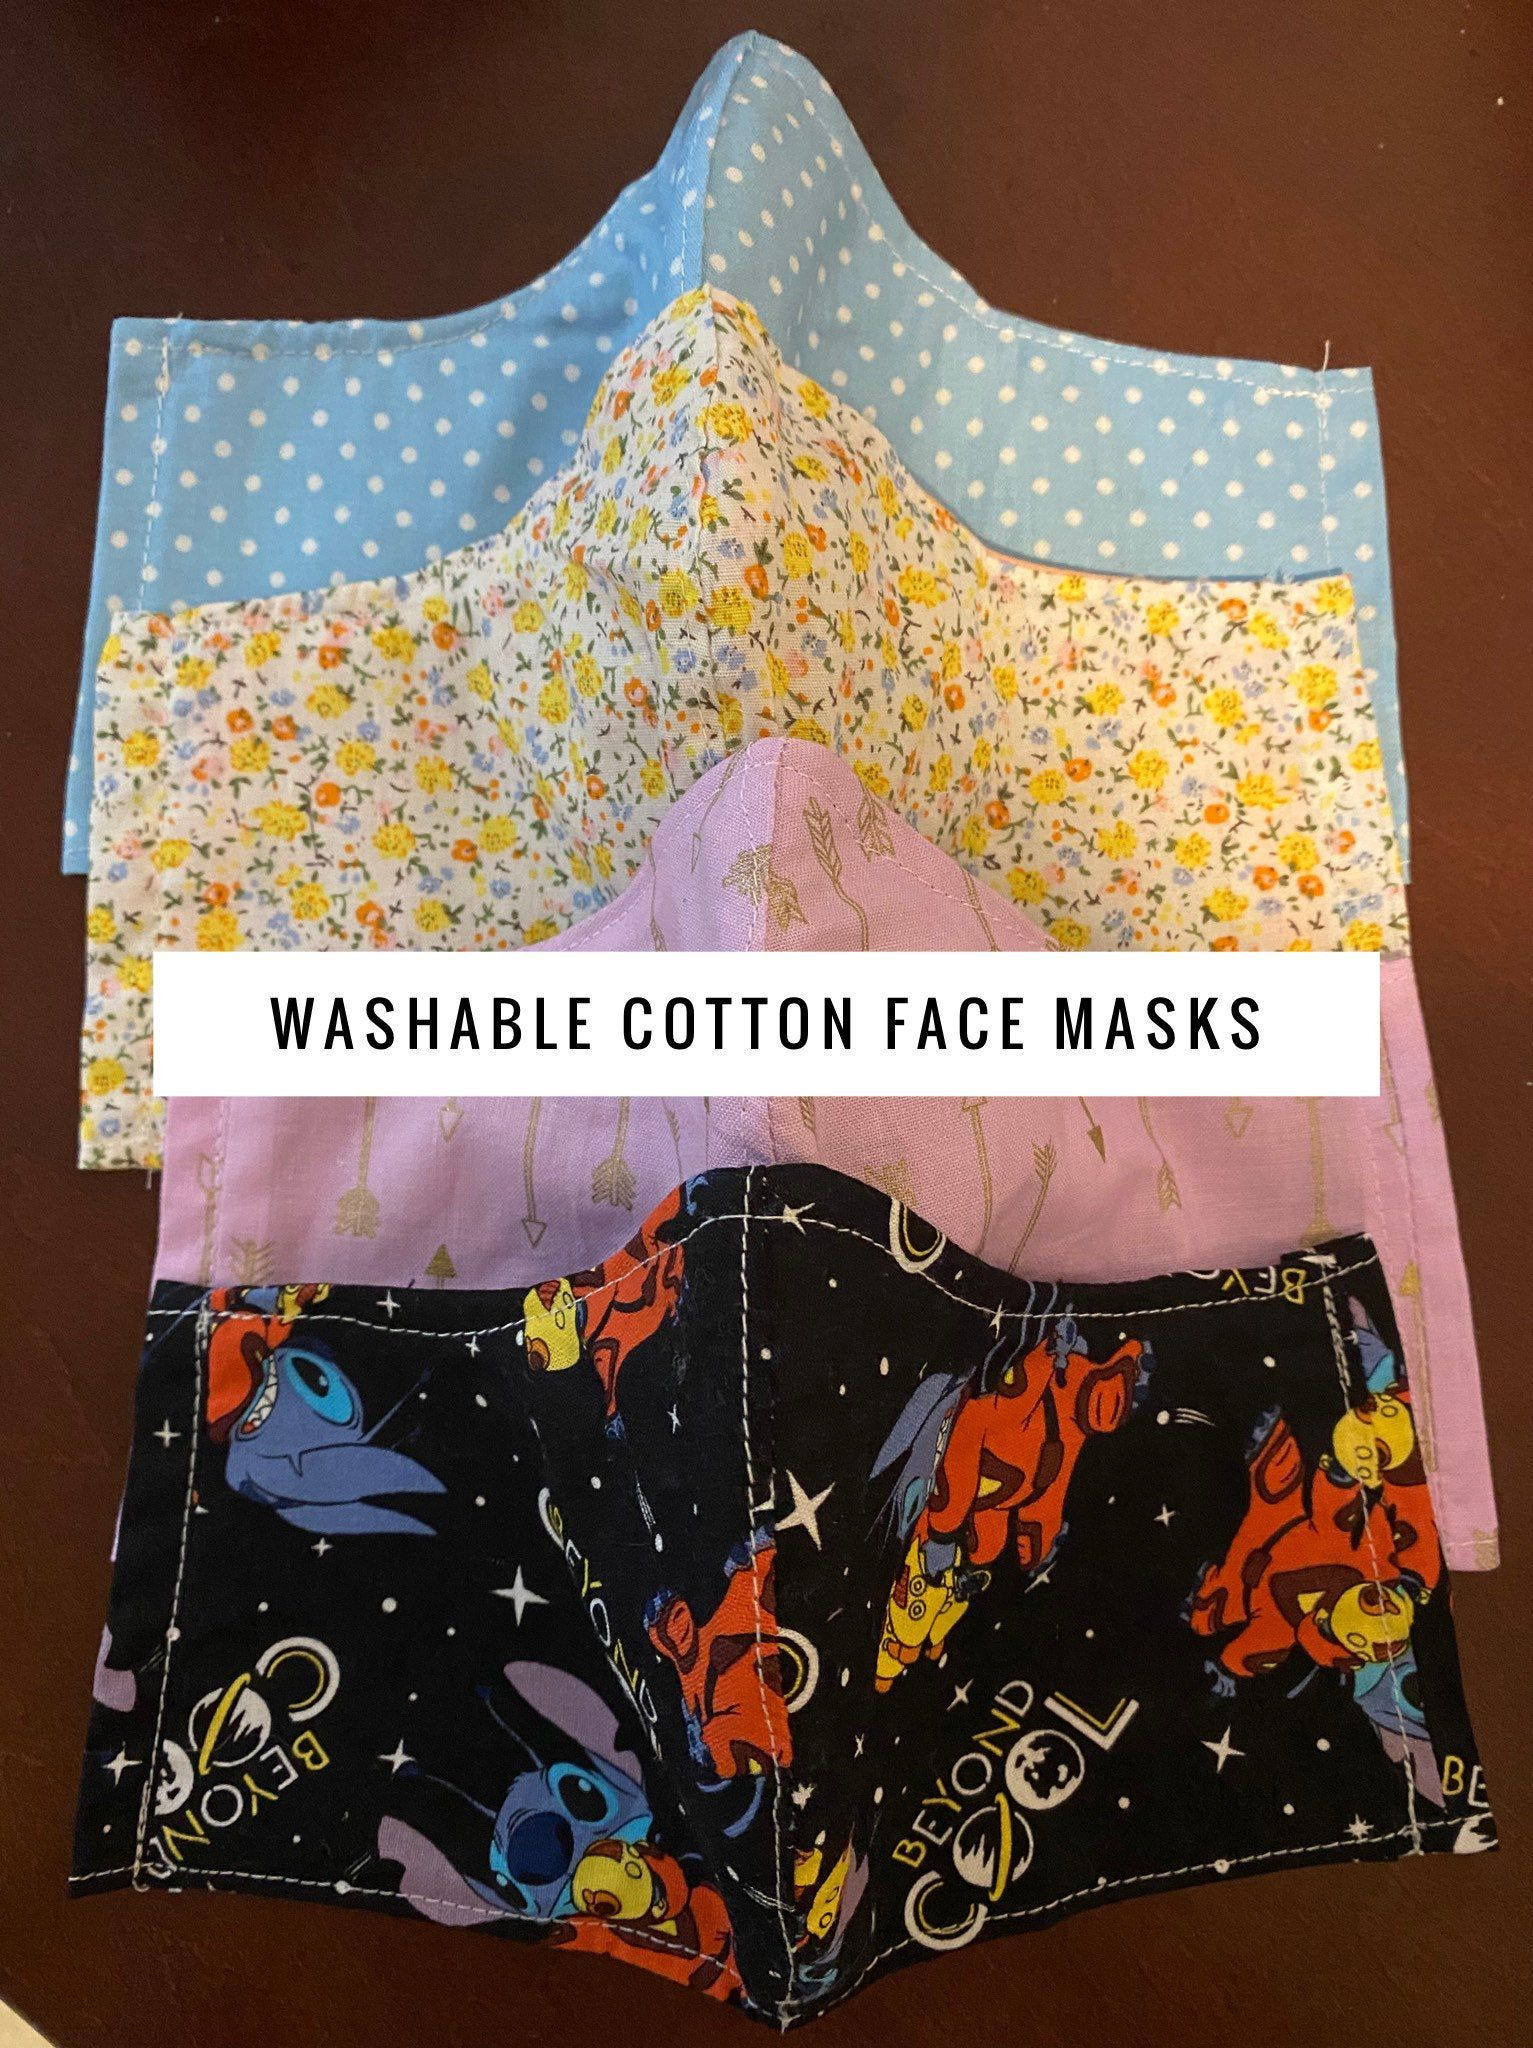 Face Mask Double Layered Cotton Fabric Filter Pocket